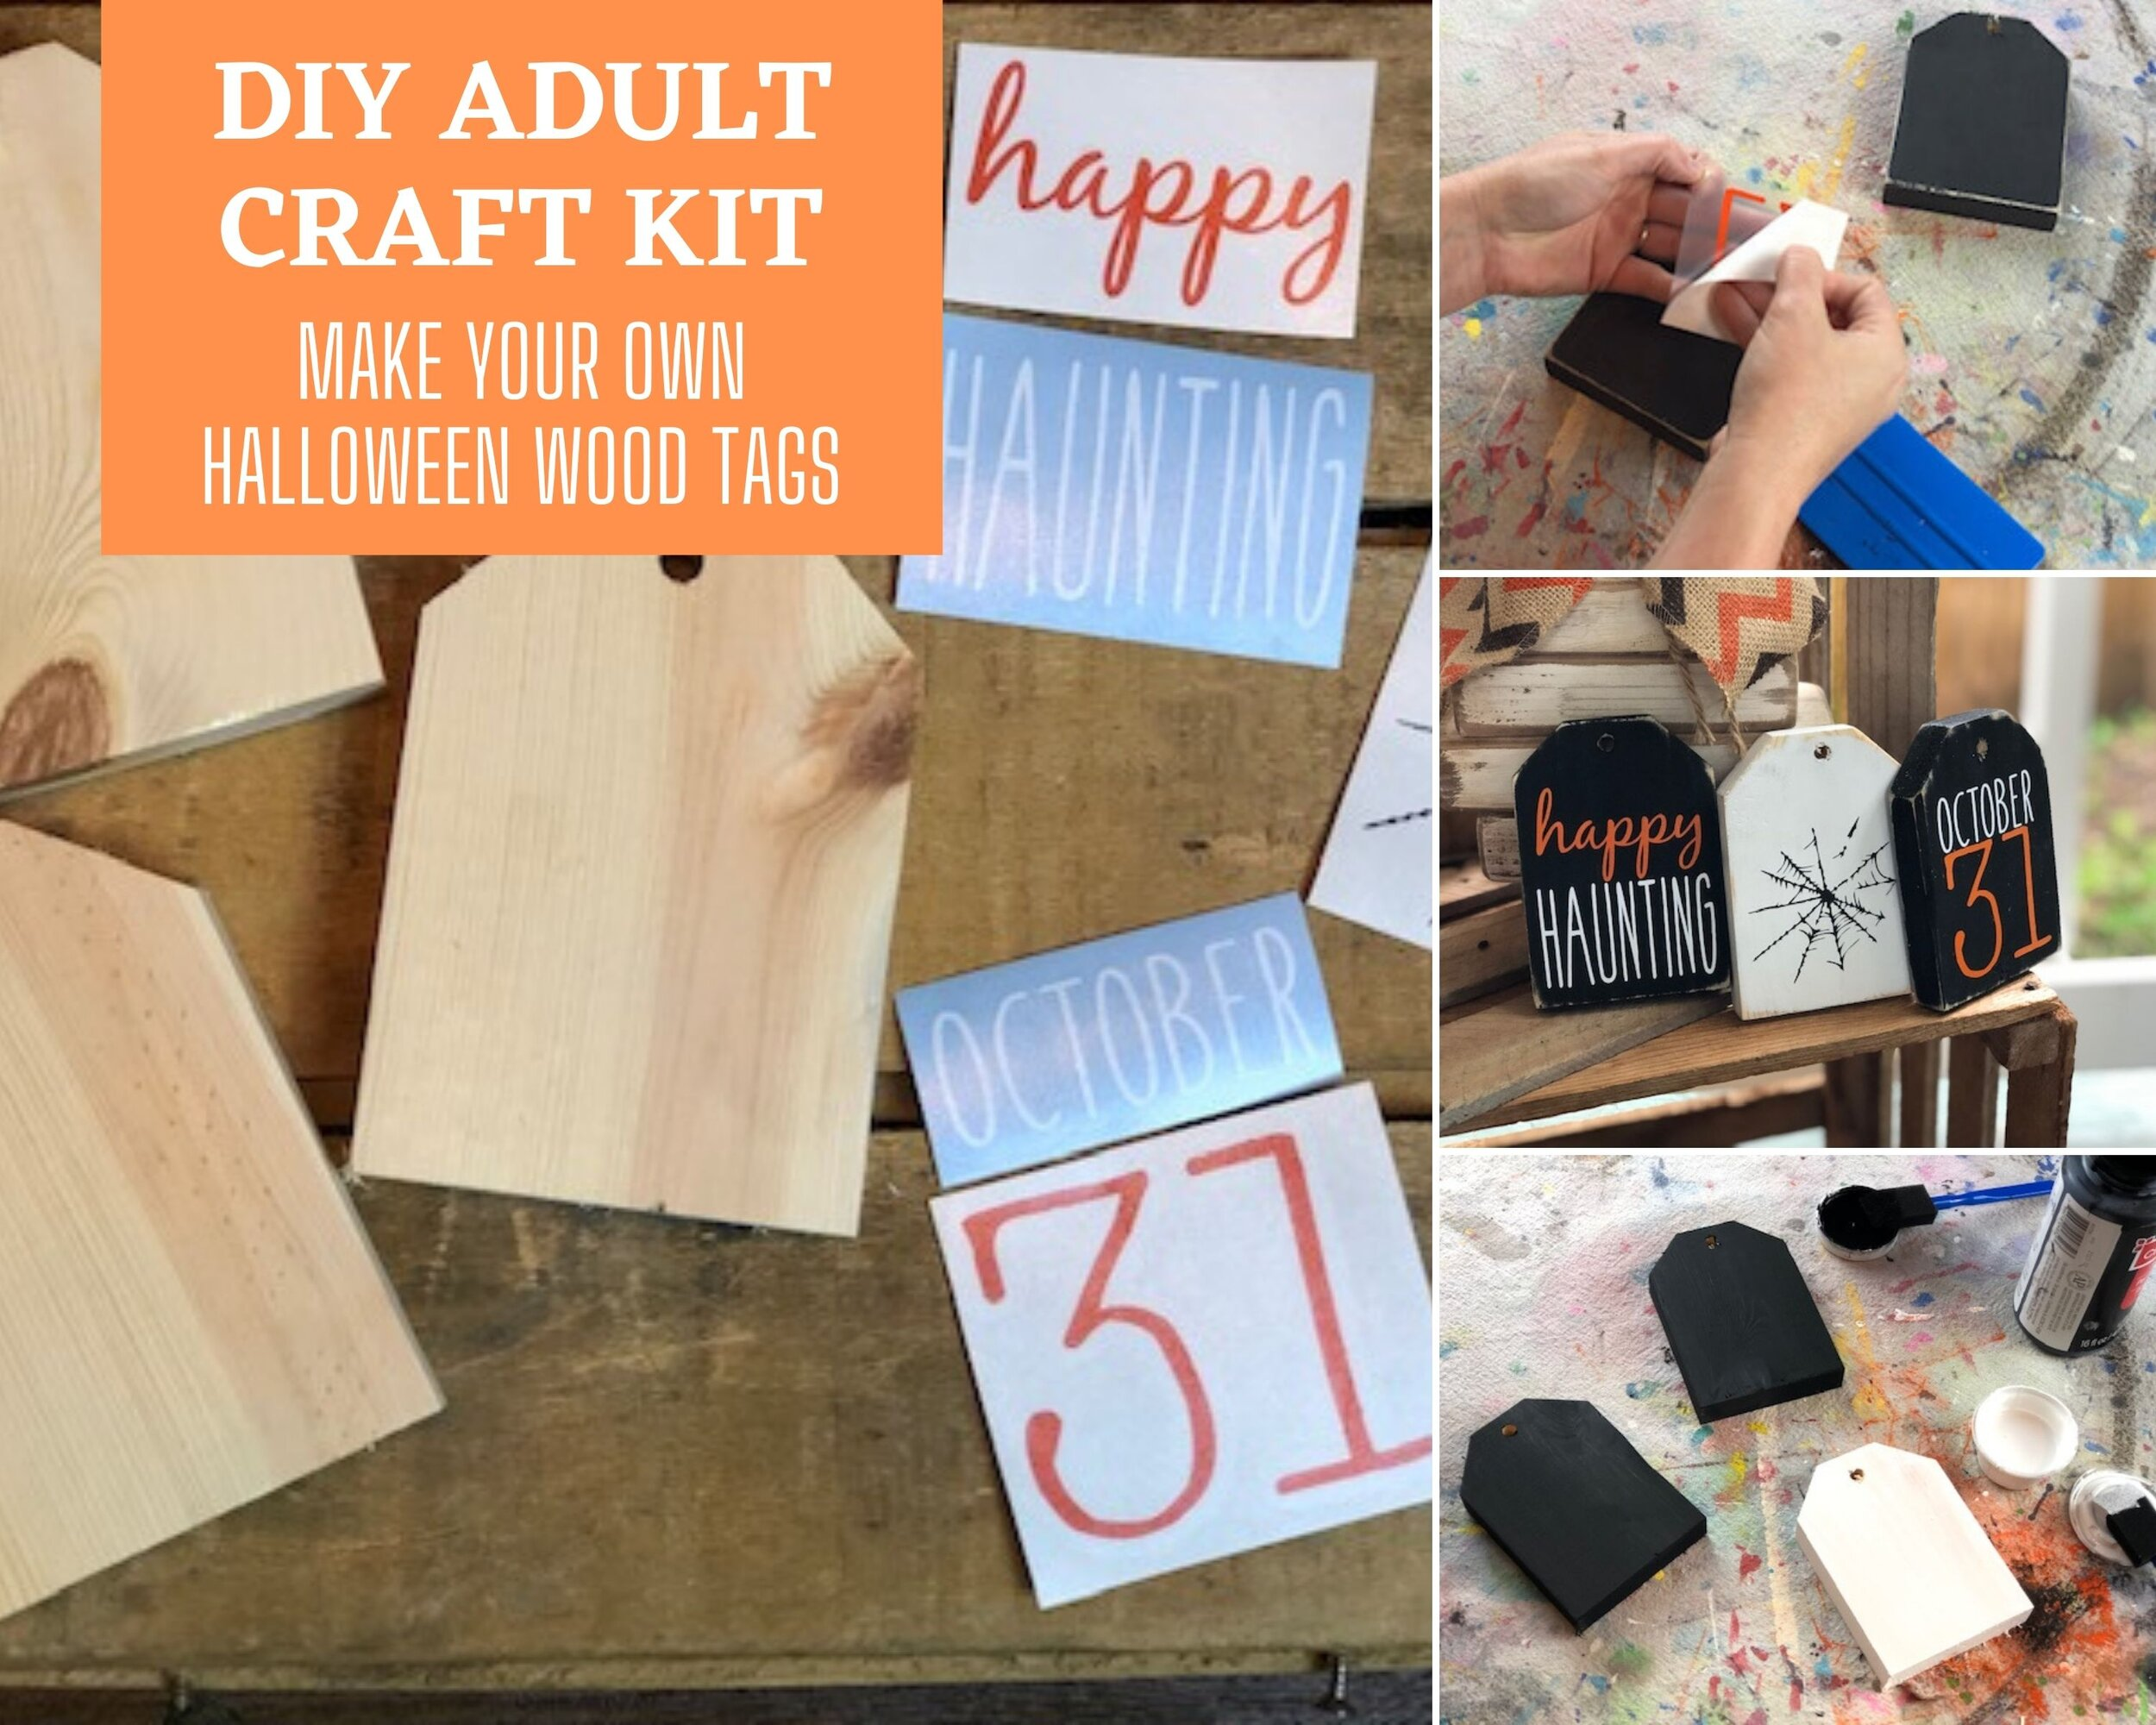 DIY Halloween craft kits for adults. Craft at home party kit for fall. Wood tags for fall